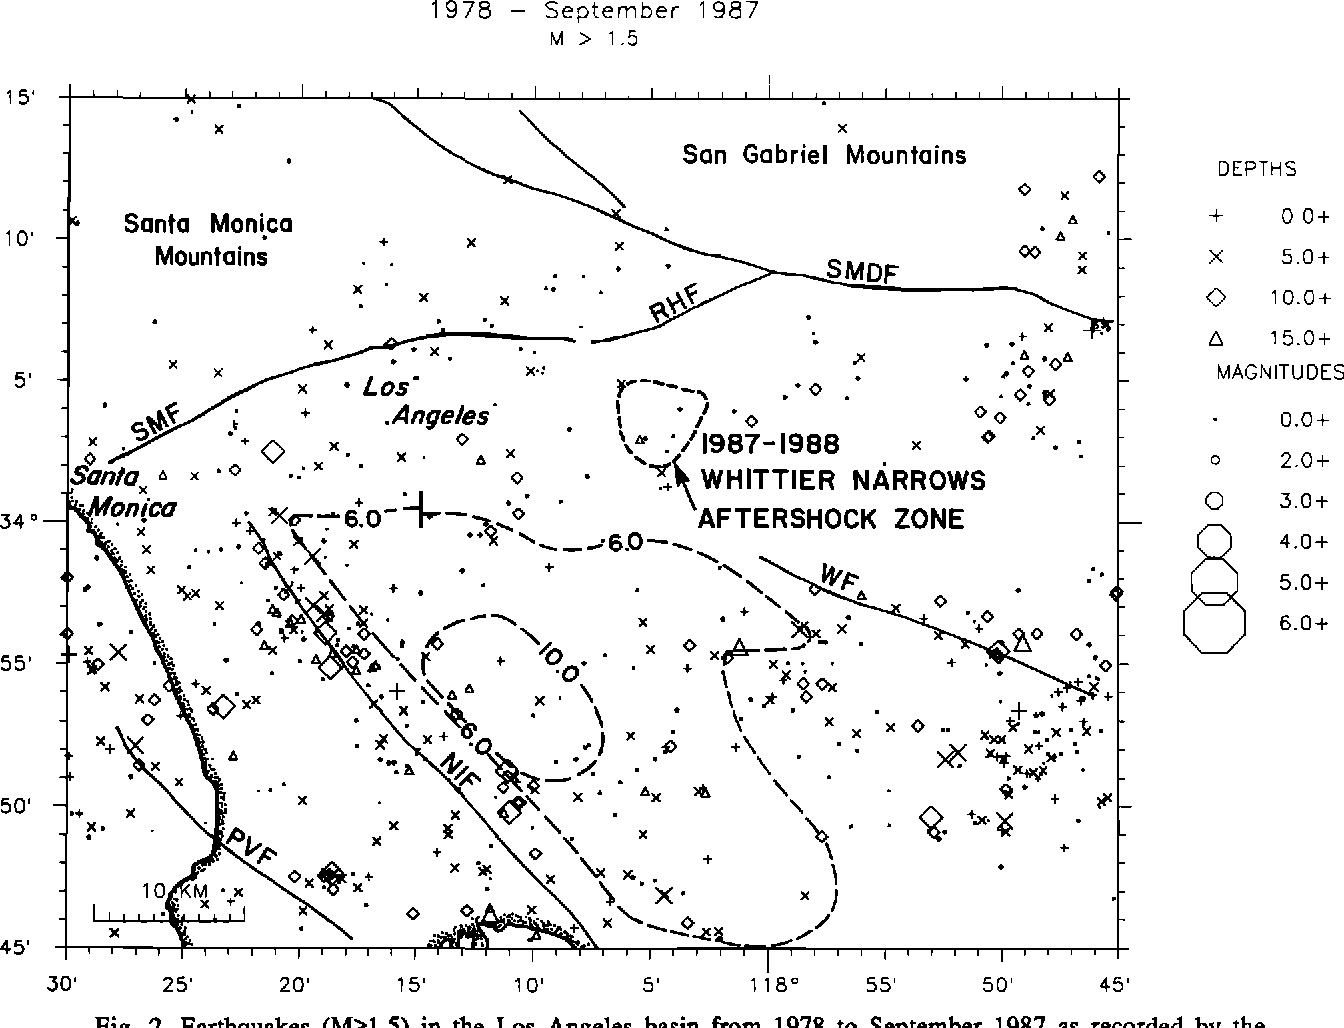 Figure 2 From The 1987 Whittier Narrows Earthquake Sequence In Los Angeles Southern California Seismological And Tectonic Analysis Semantic Scholar